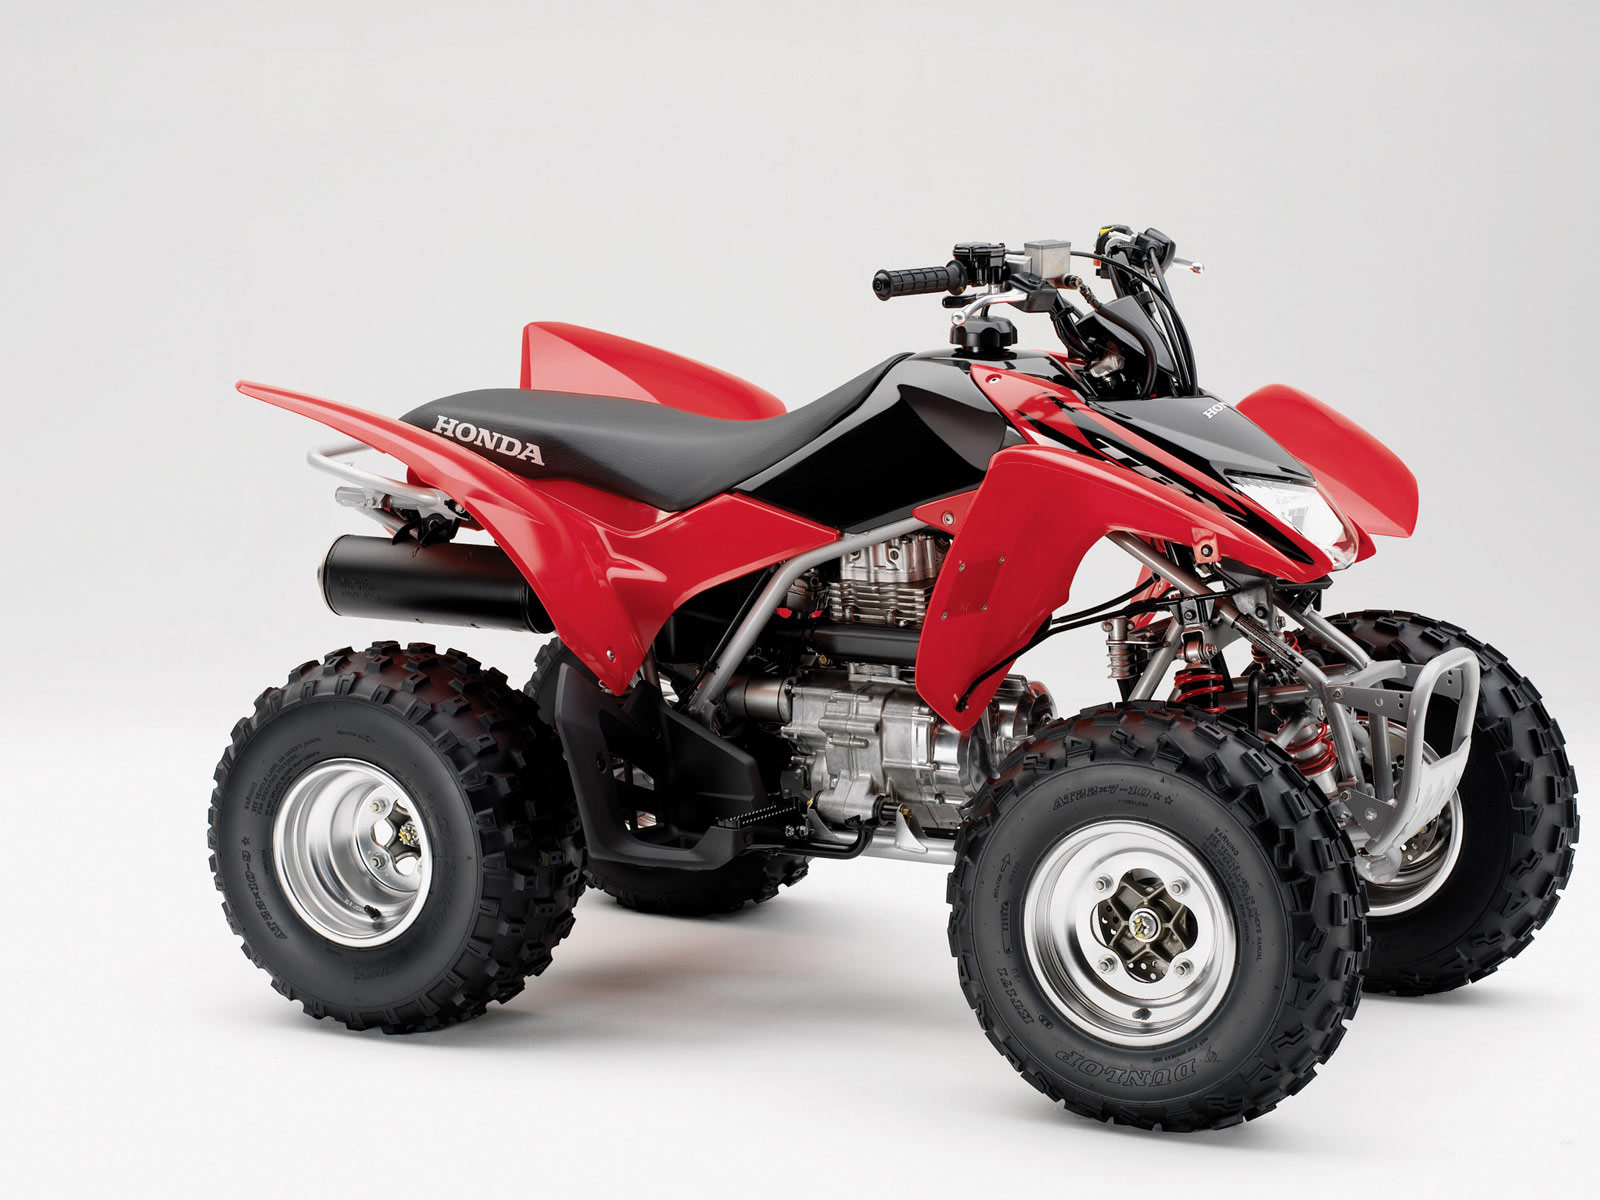 2006 TRX250EX pictures | HONDA accident lawyers information.